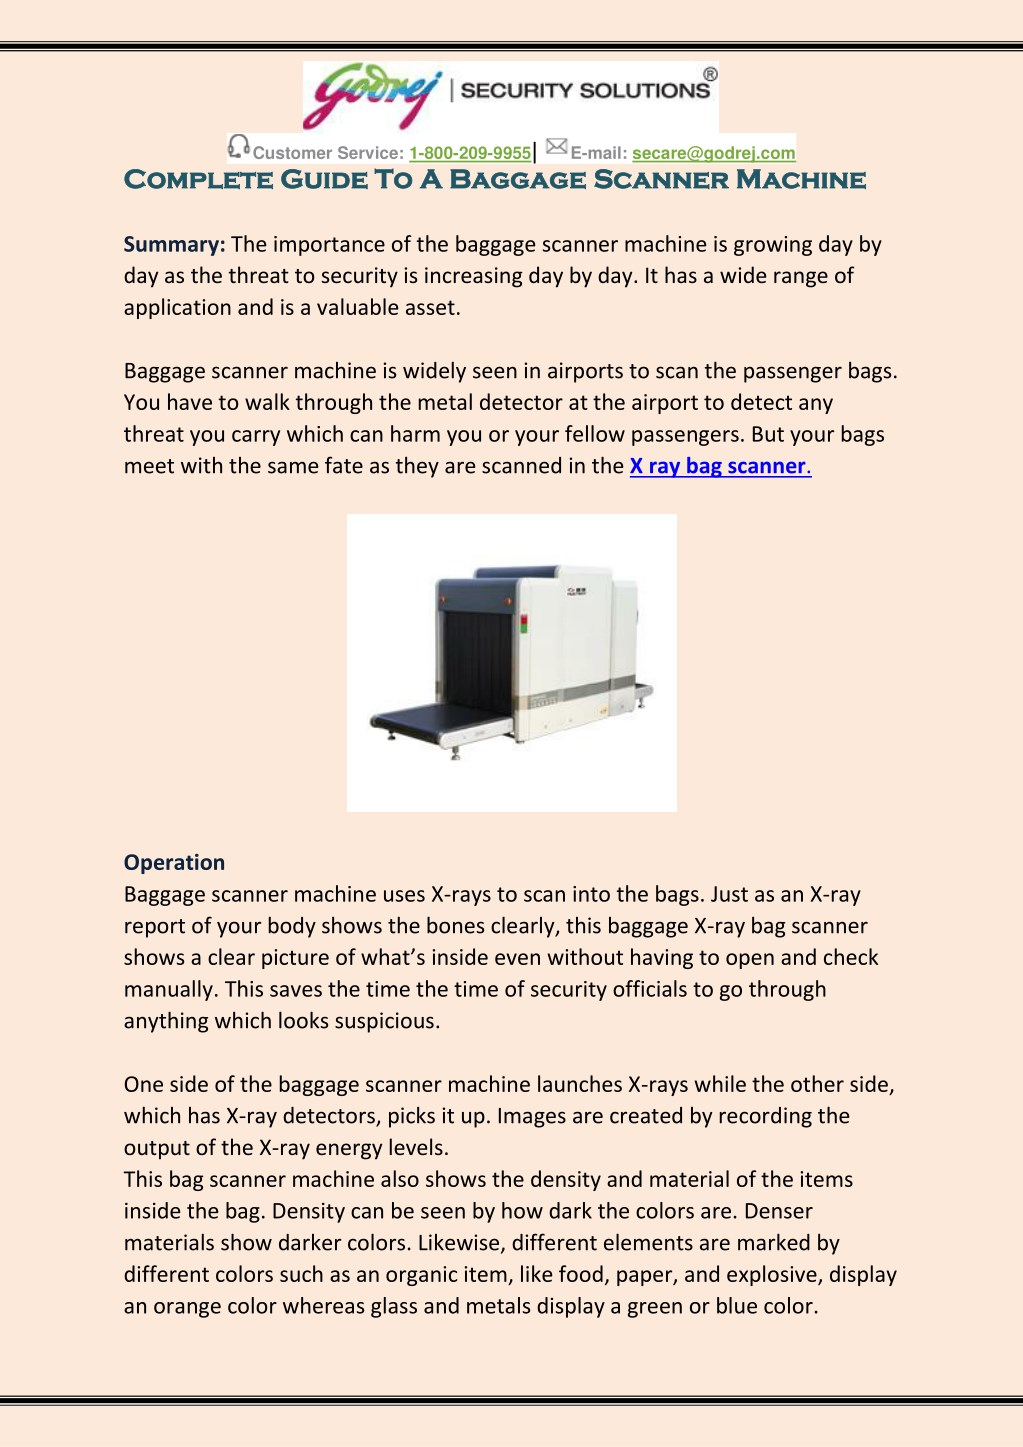 PPT - Complete Guide To A Baggage Scanner Machine PowerPoint